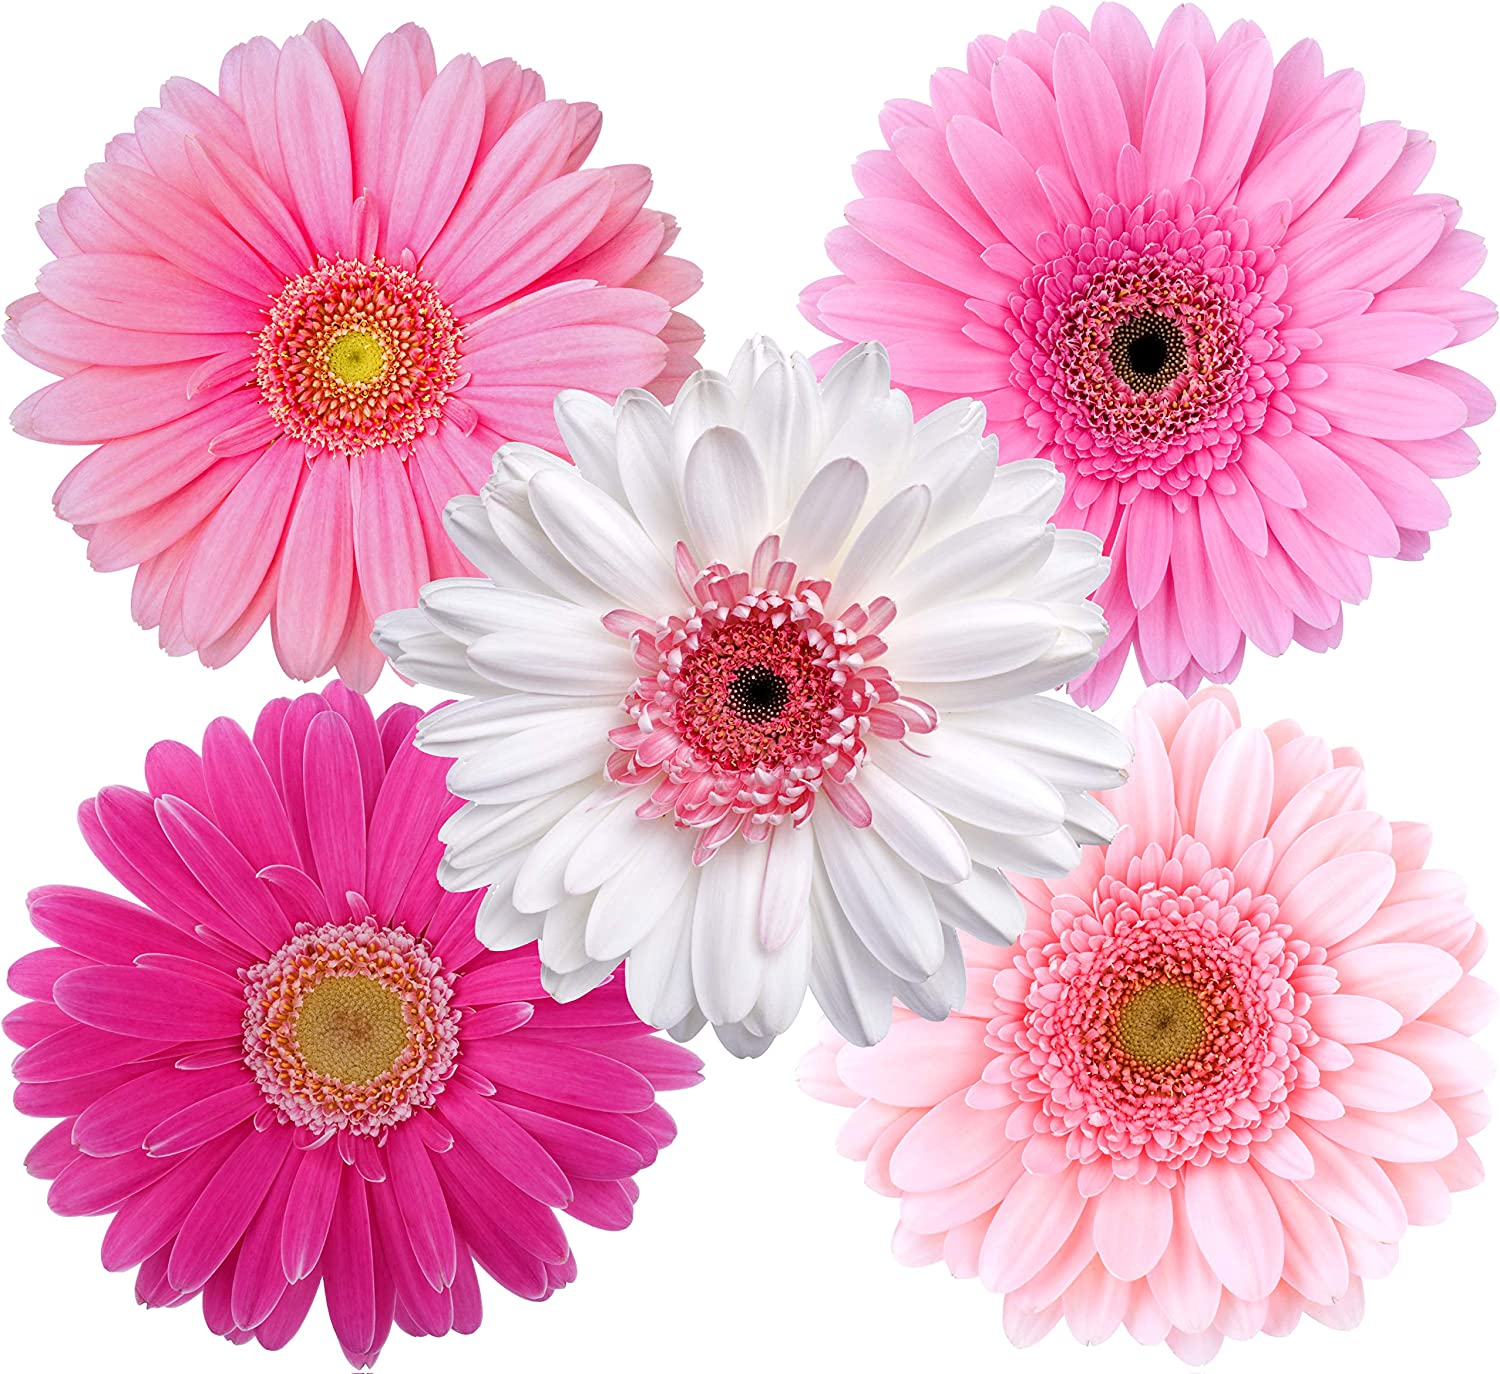 Amazon.com: StikArt Pink Gerber Daisies and White Gerber Daisies Flower  Wall Decals: Home & Kitchen